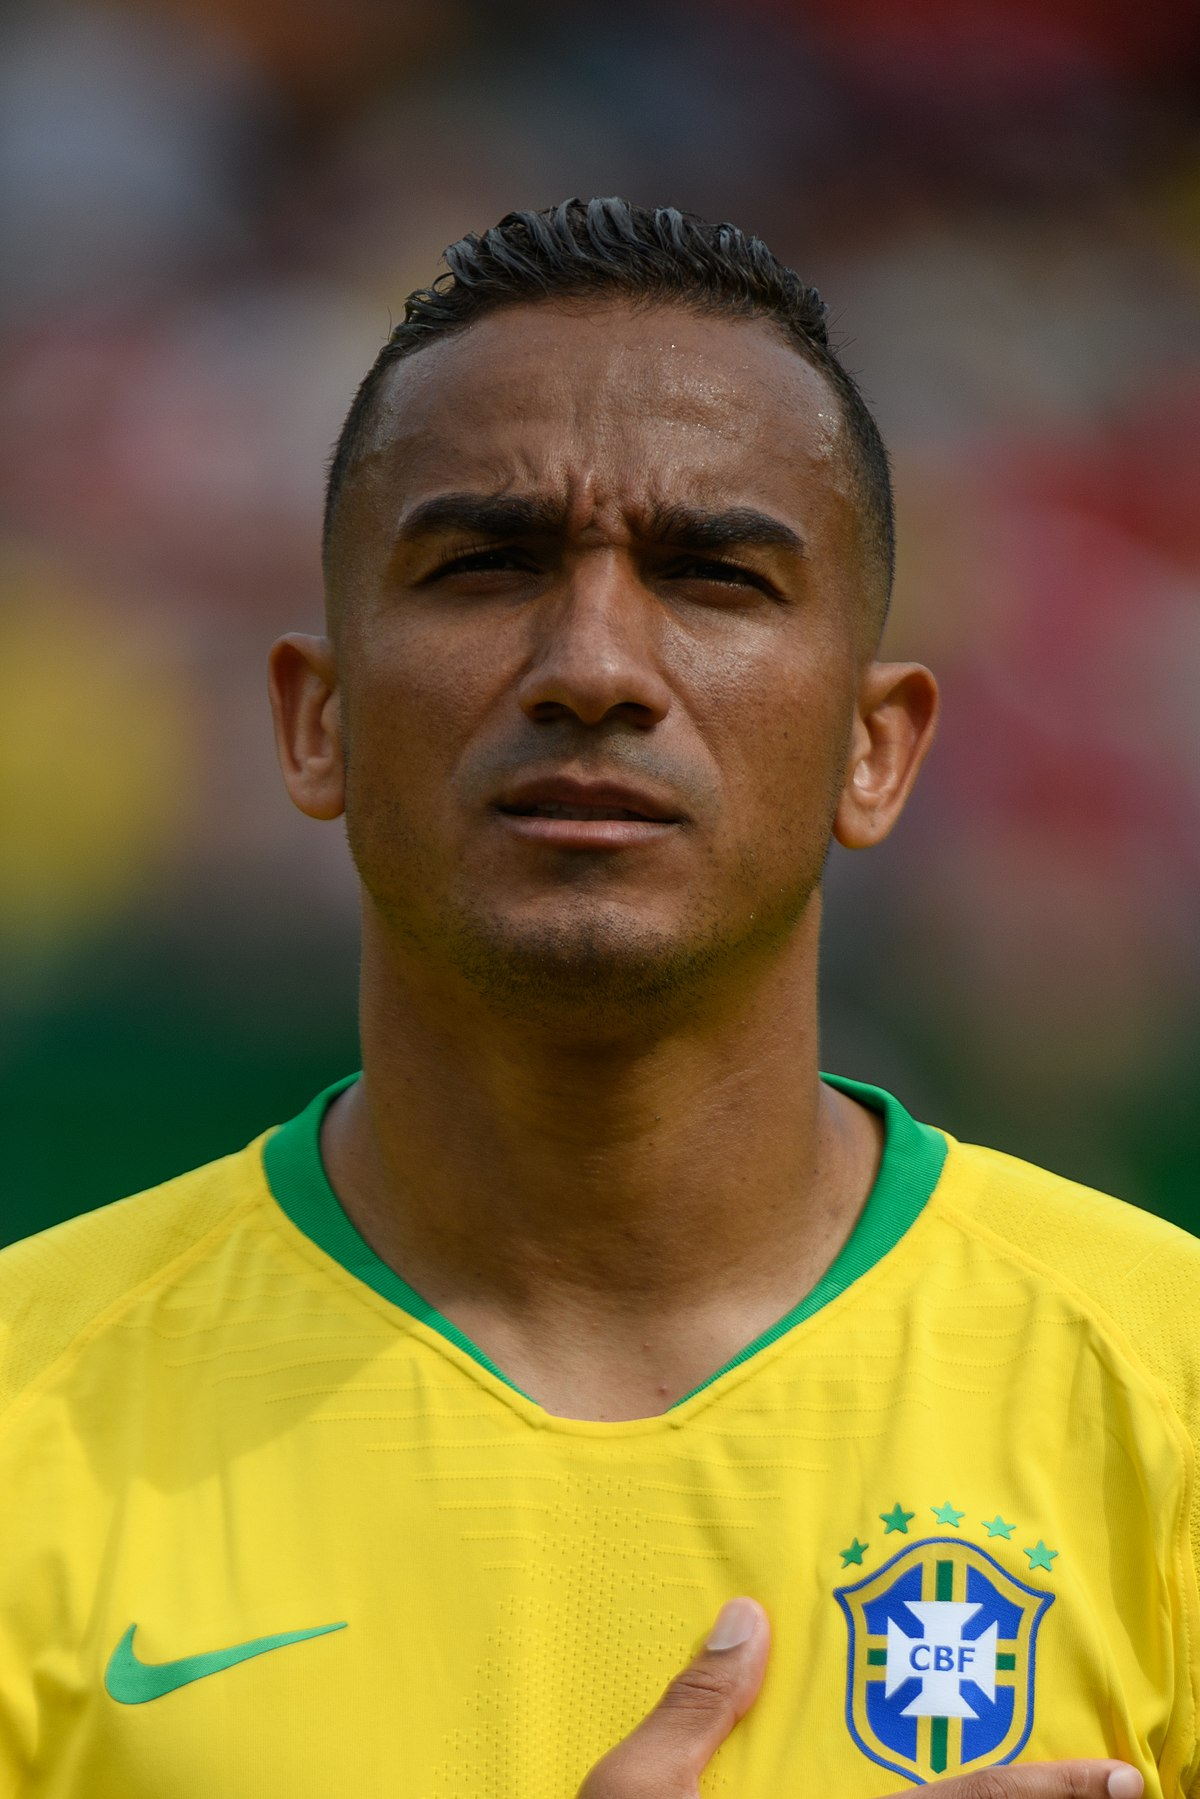 Danilo Footballer Born July 1991 Wikipedia